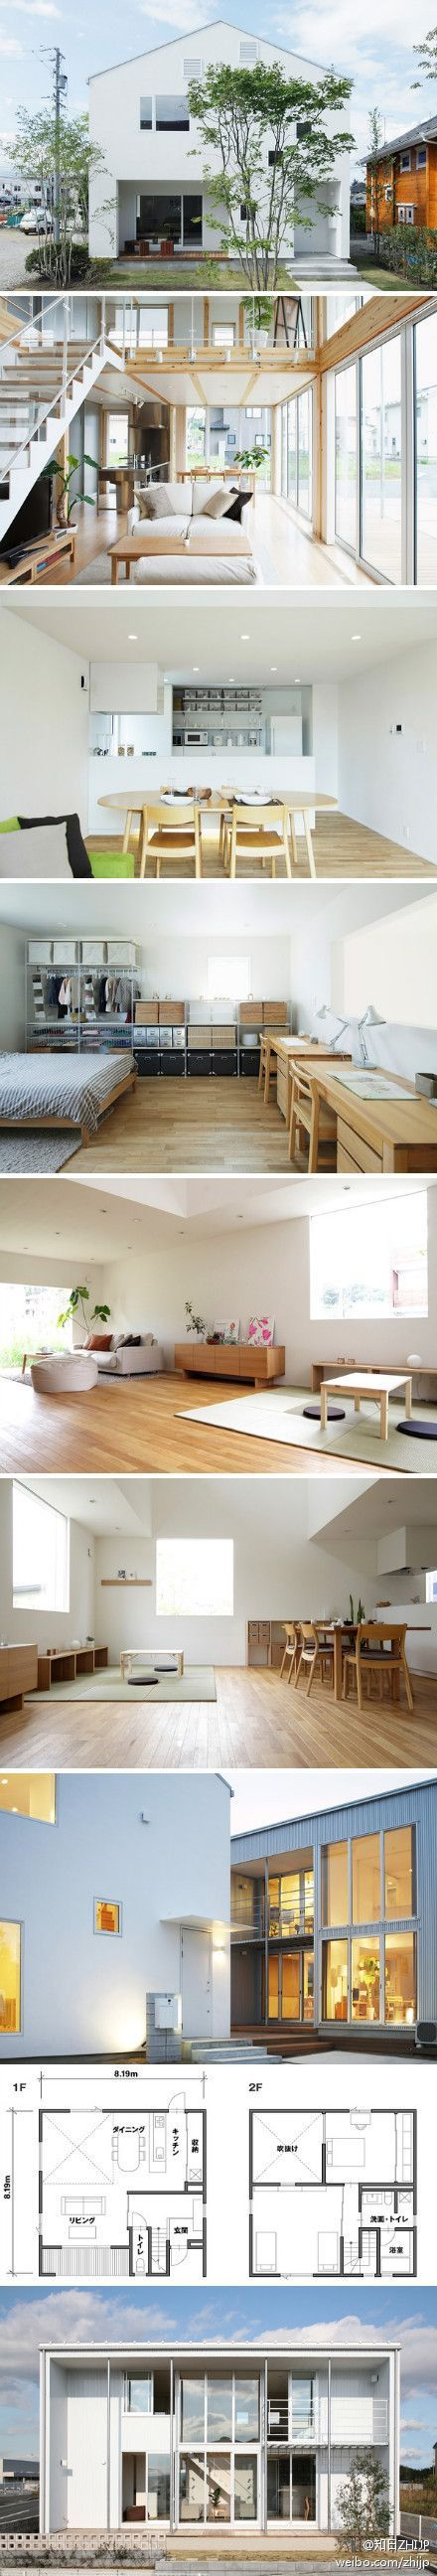 Muji Home. Japanese design. Simple. Clean. Minimalist.